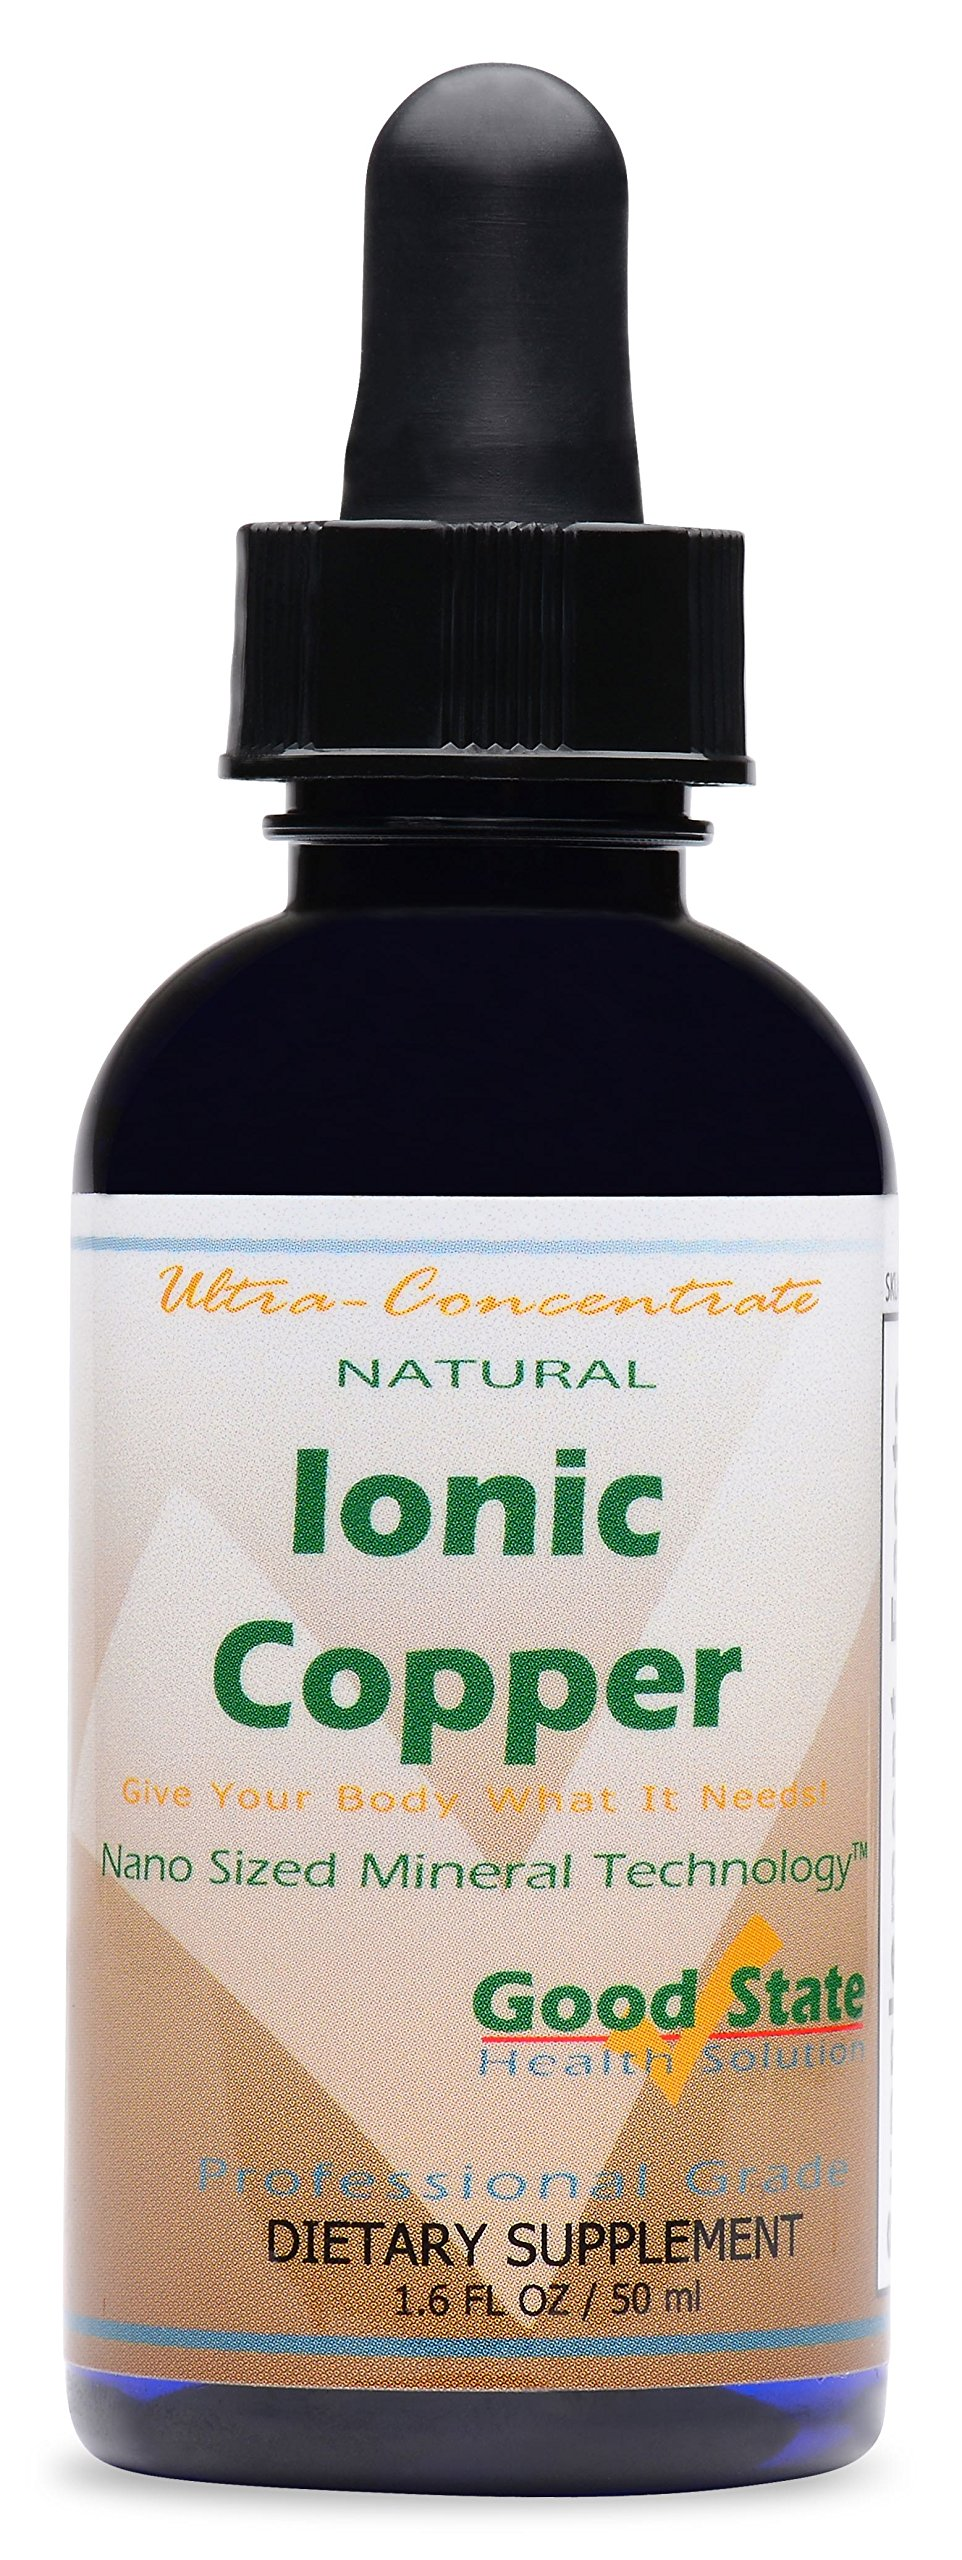 Good State | Natural Ionic Copper | Liquid Concentrate | Nano Sized Mineral Technology | Professional Grade Dietary Supplement | Supports Healthy Growth & Development | 1.6 Fl oz Bottle (50 mL)